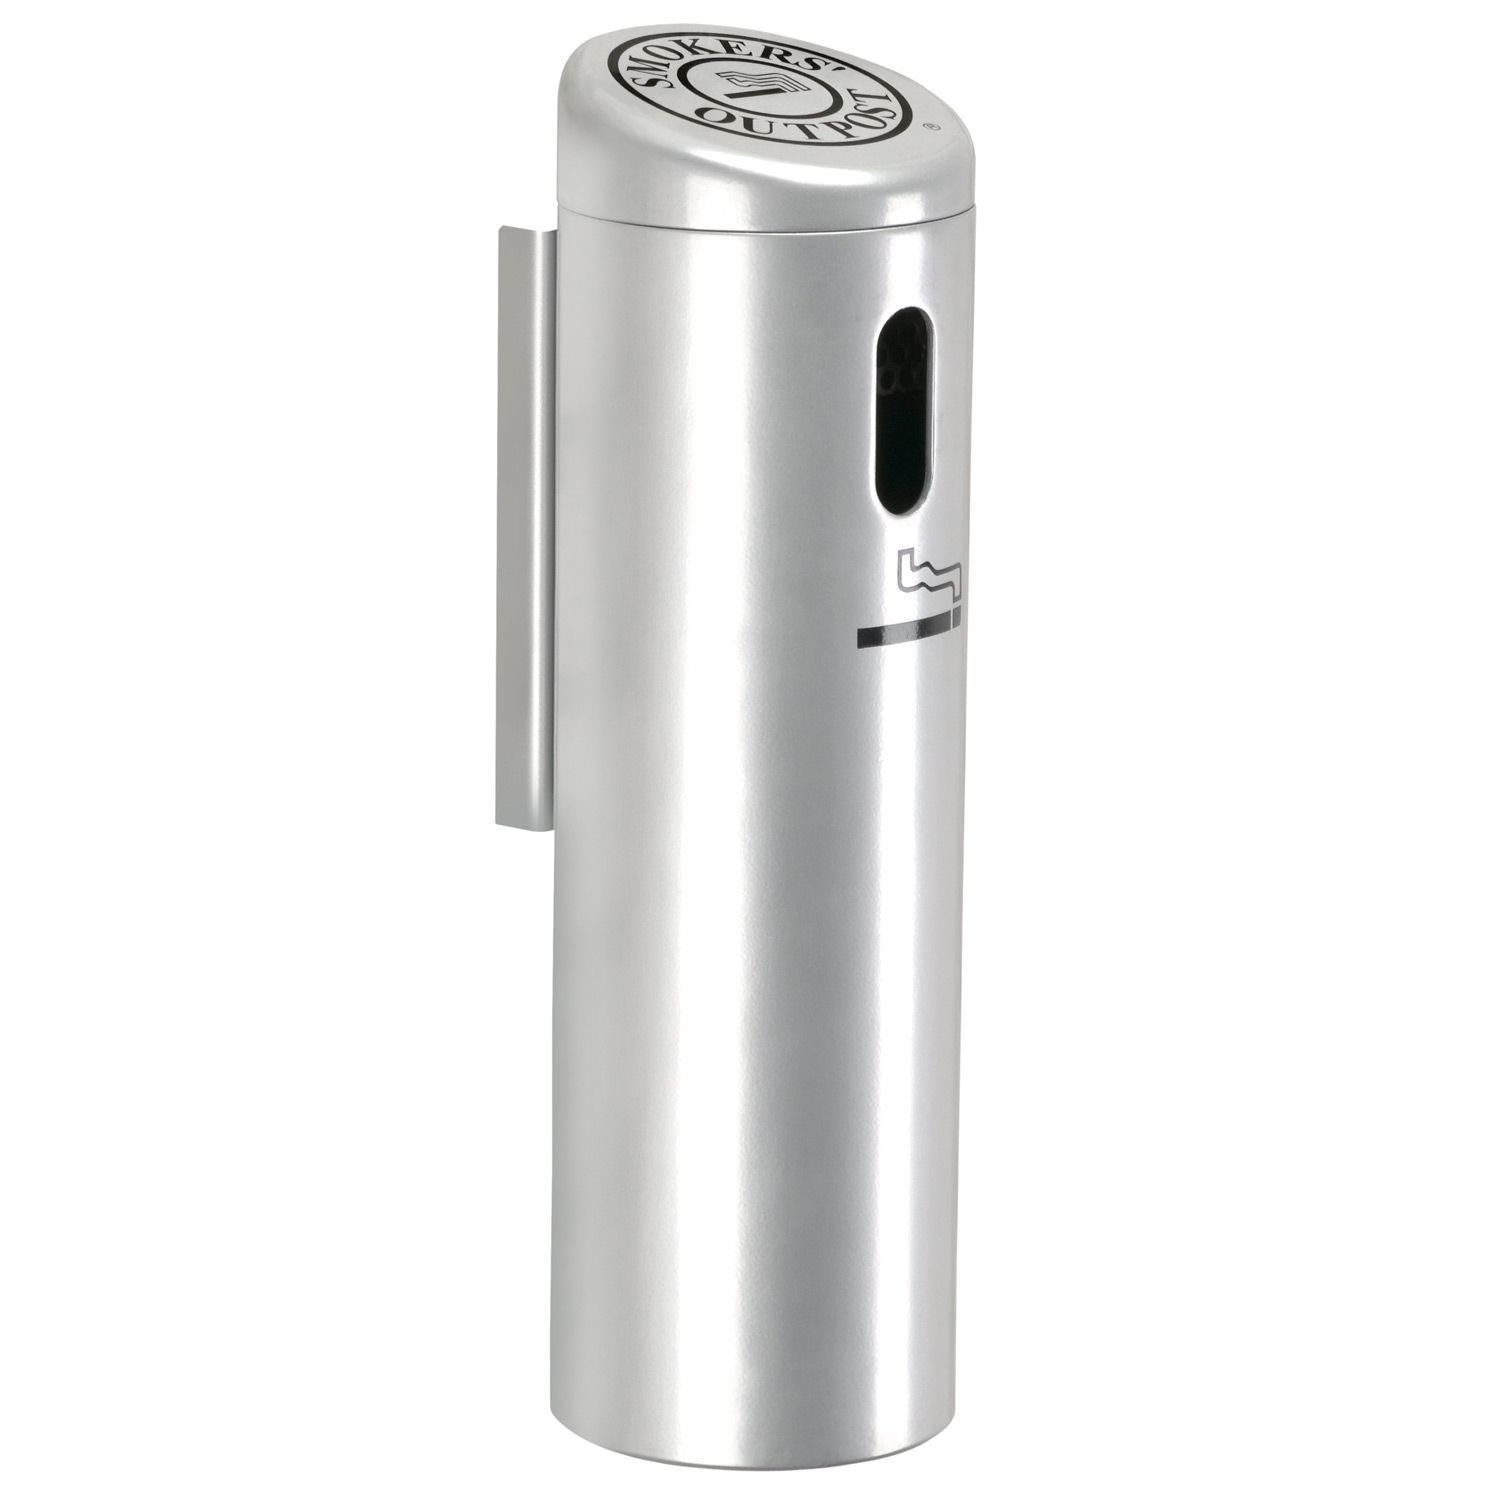 Silver Cigarette Receptacle, Smoke Post, Cigarette Collector, Ash Tray, Extinguisher, Wall Mounted